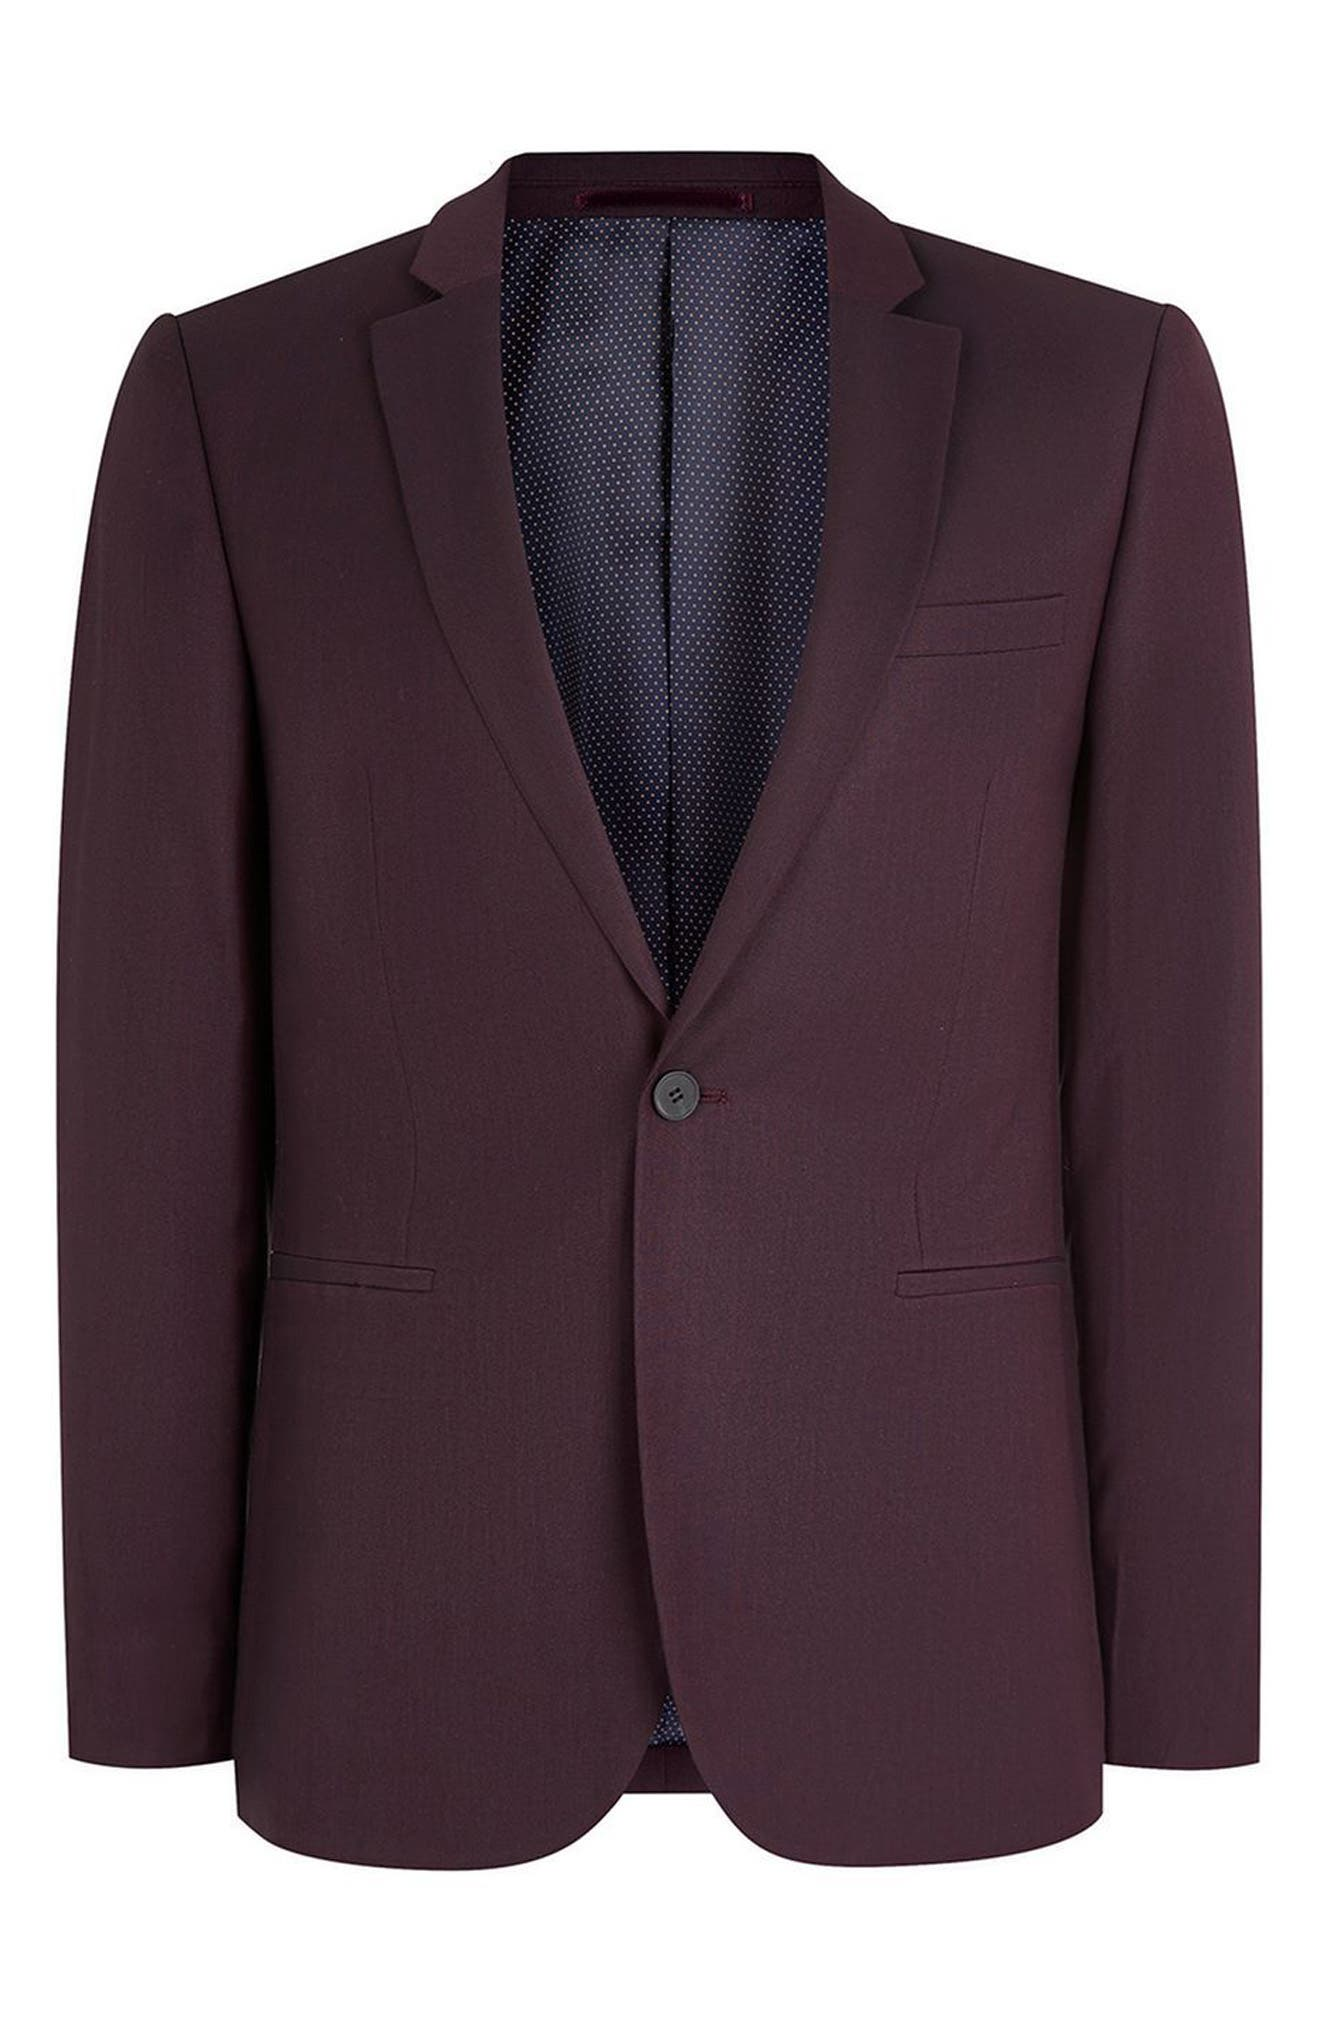 Skinny Fit Plum One-Button Suit Jacket,                             Alternate thumbnail 5, color,                             Plum